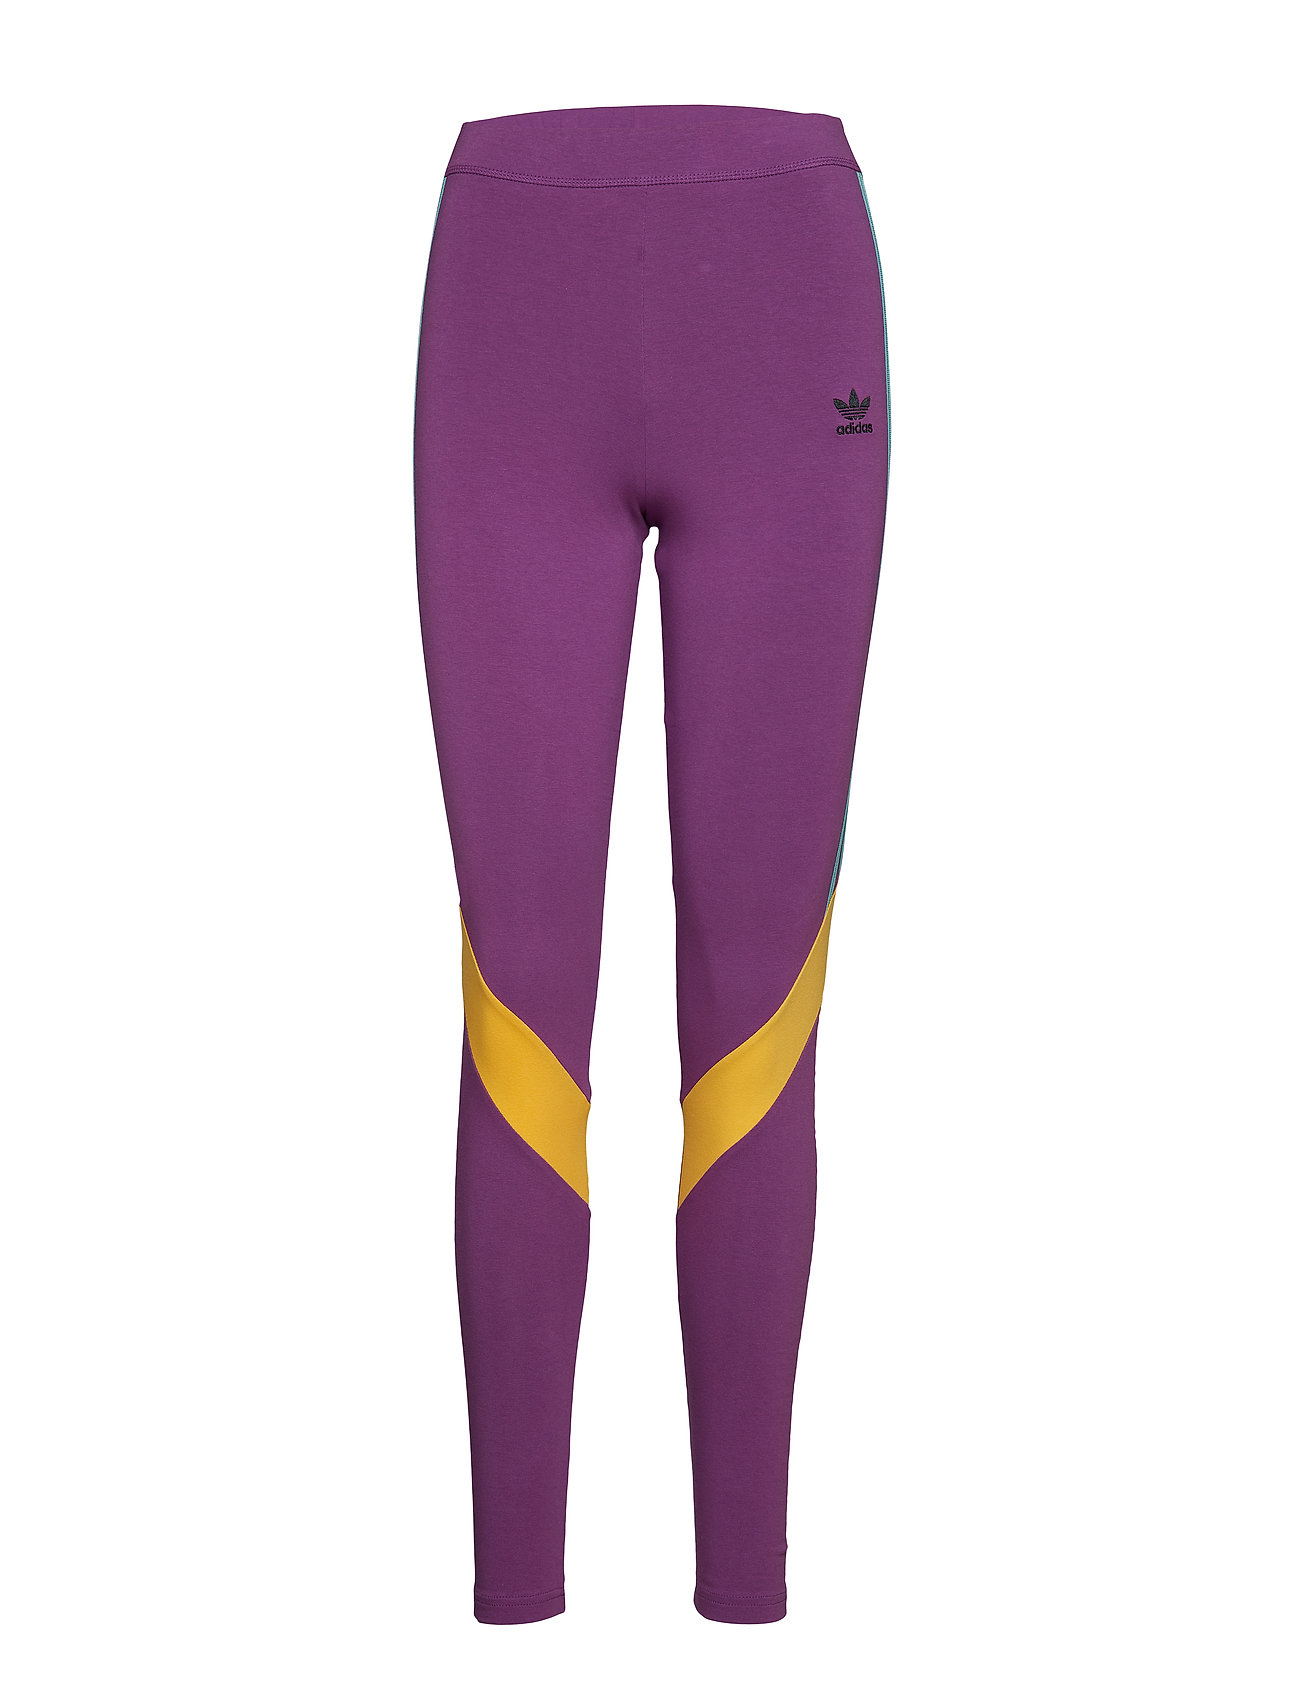 adidas Originals HW TIGHTS - RICMAU